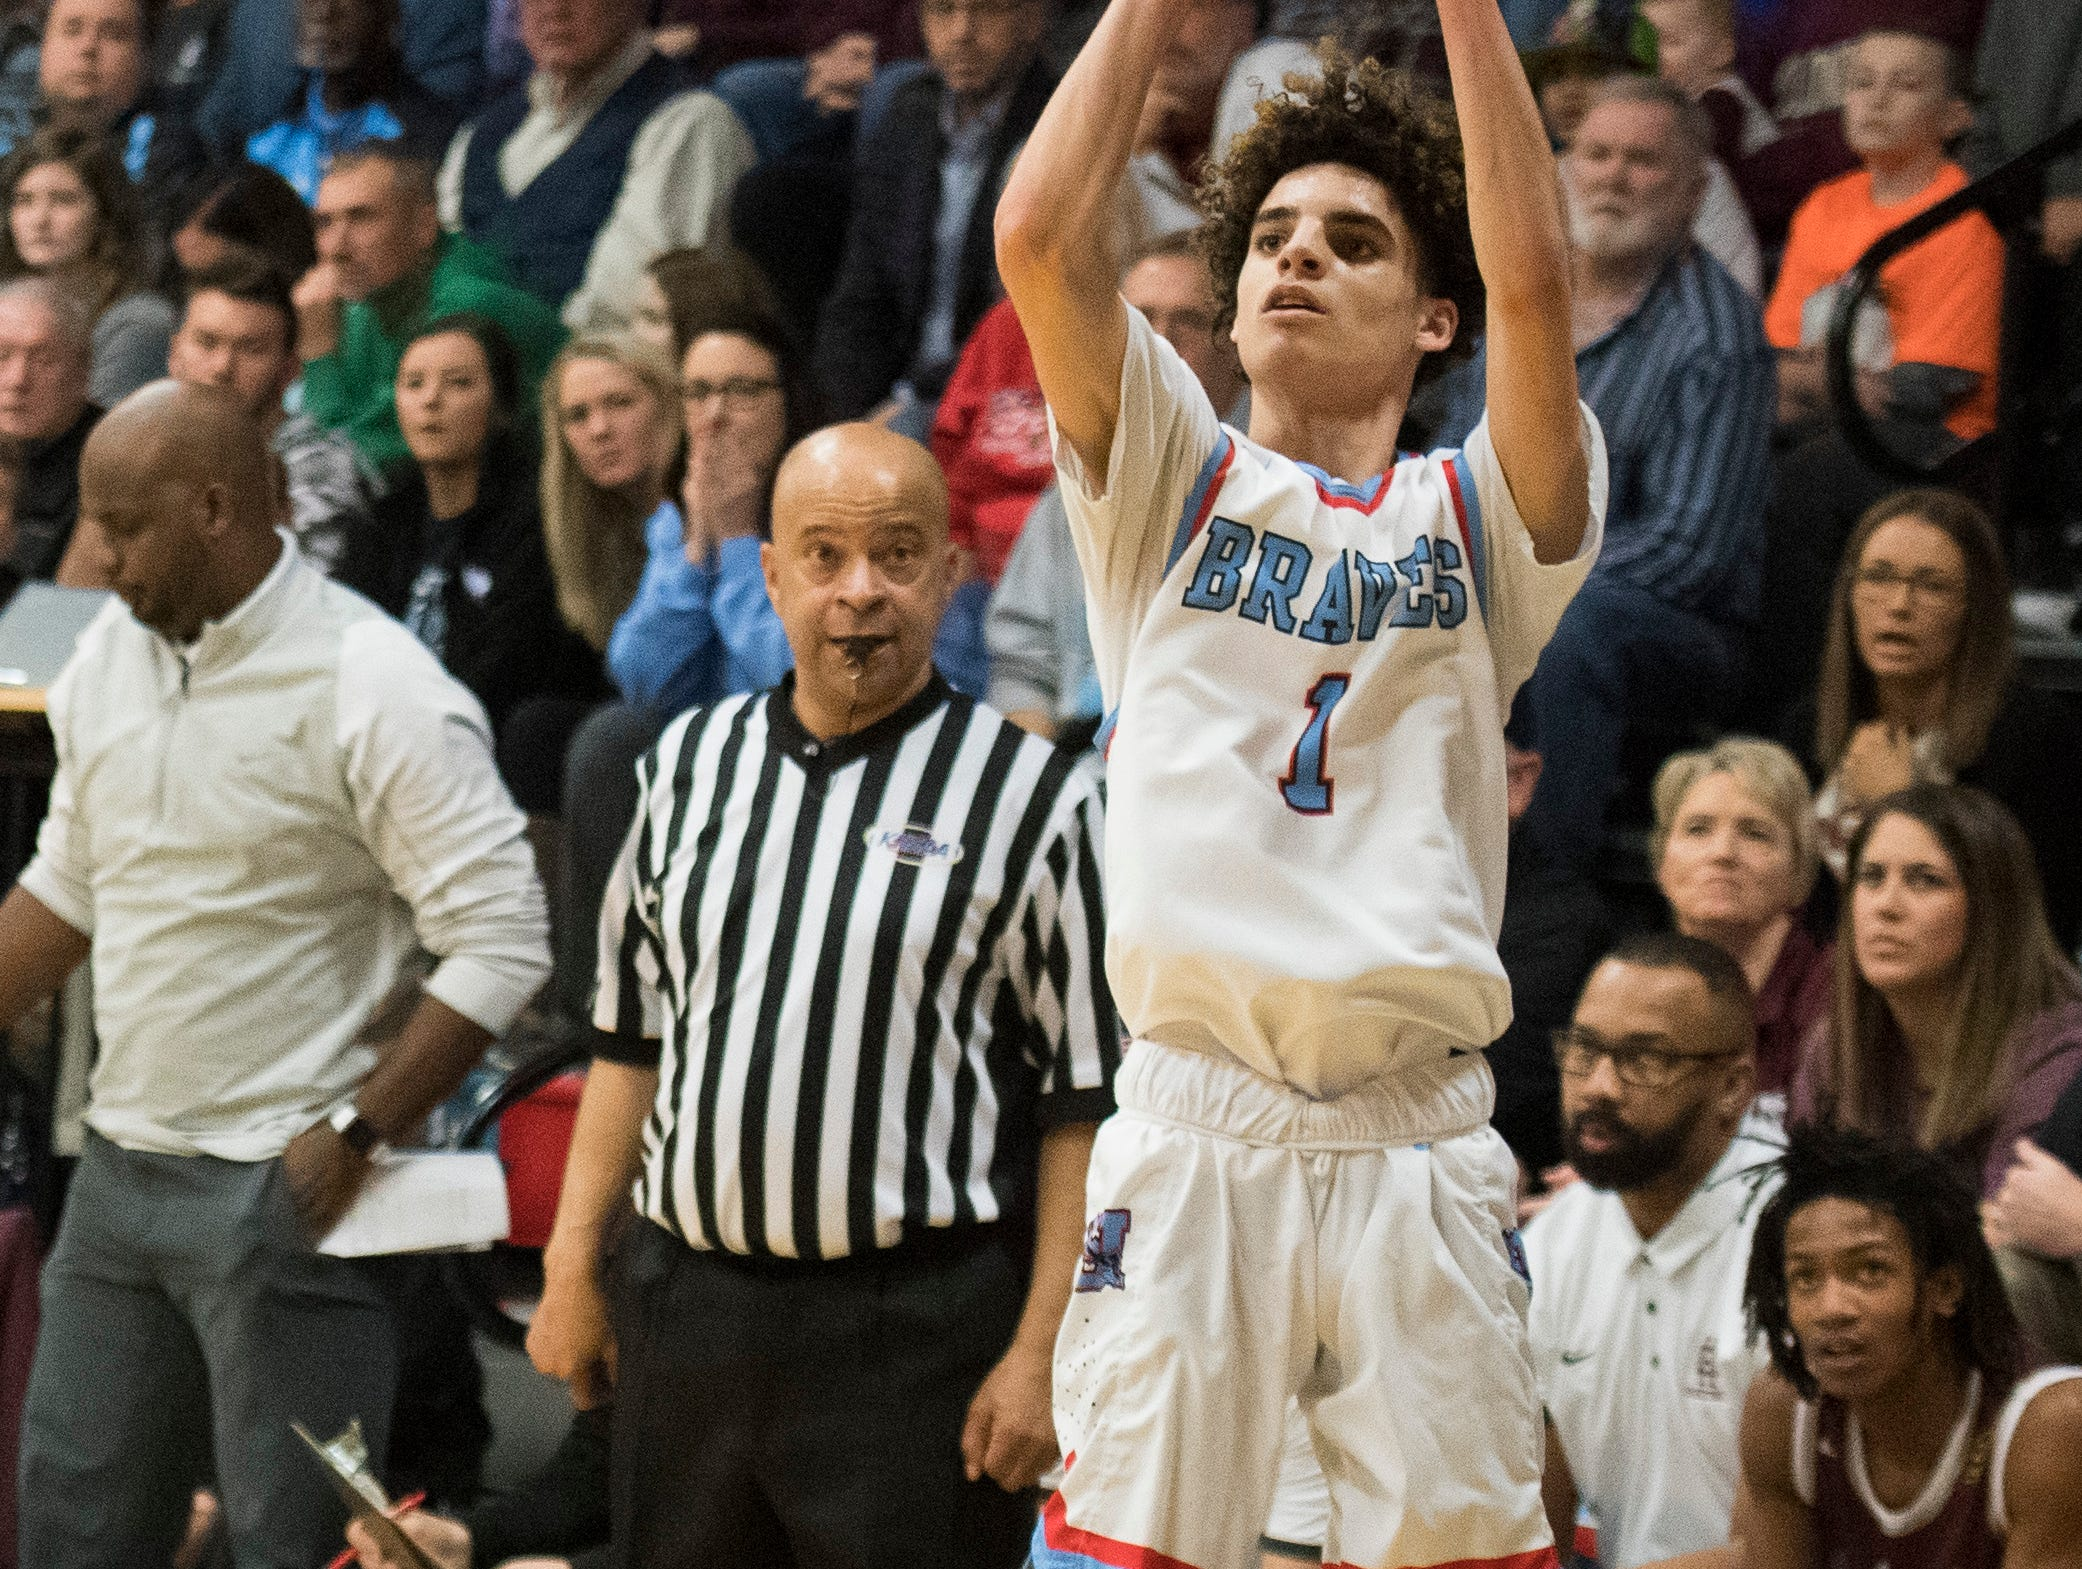 Union County's Eli Wilkes (1) takes a 3-point shot during the 2019 Sixth District championship game against the Henderson County Colonels at Union County High School Thursday, Feb. 21, 2019.